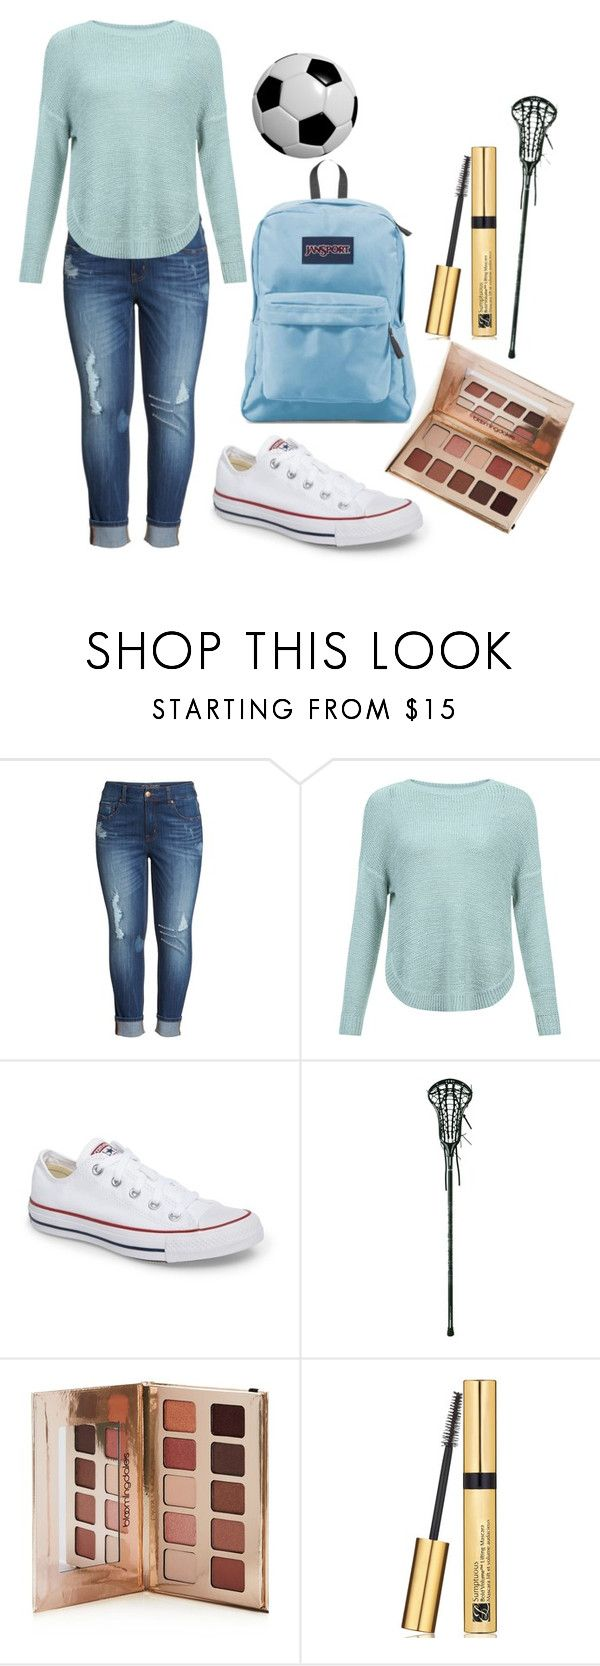 """JENNA"" by kayla-demodna on Polyvore featuring Melissa McCarthy Seven7, JDY, Converse, Under Armour, Bloomingdale's, Estée Lauder and JanSport"